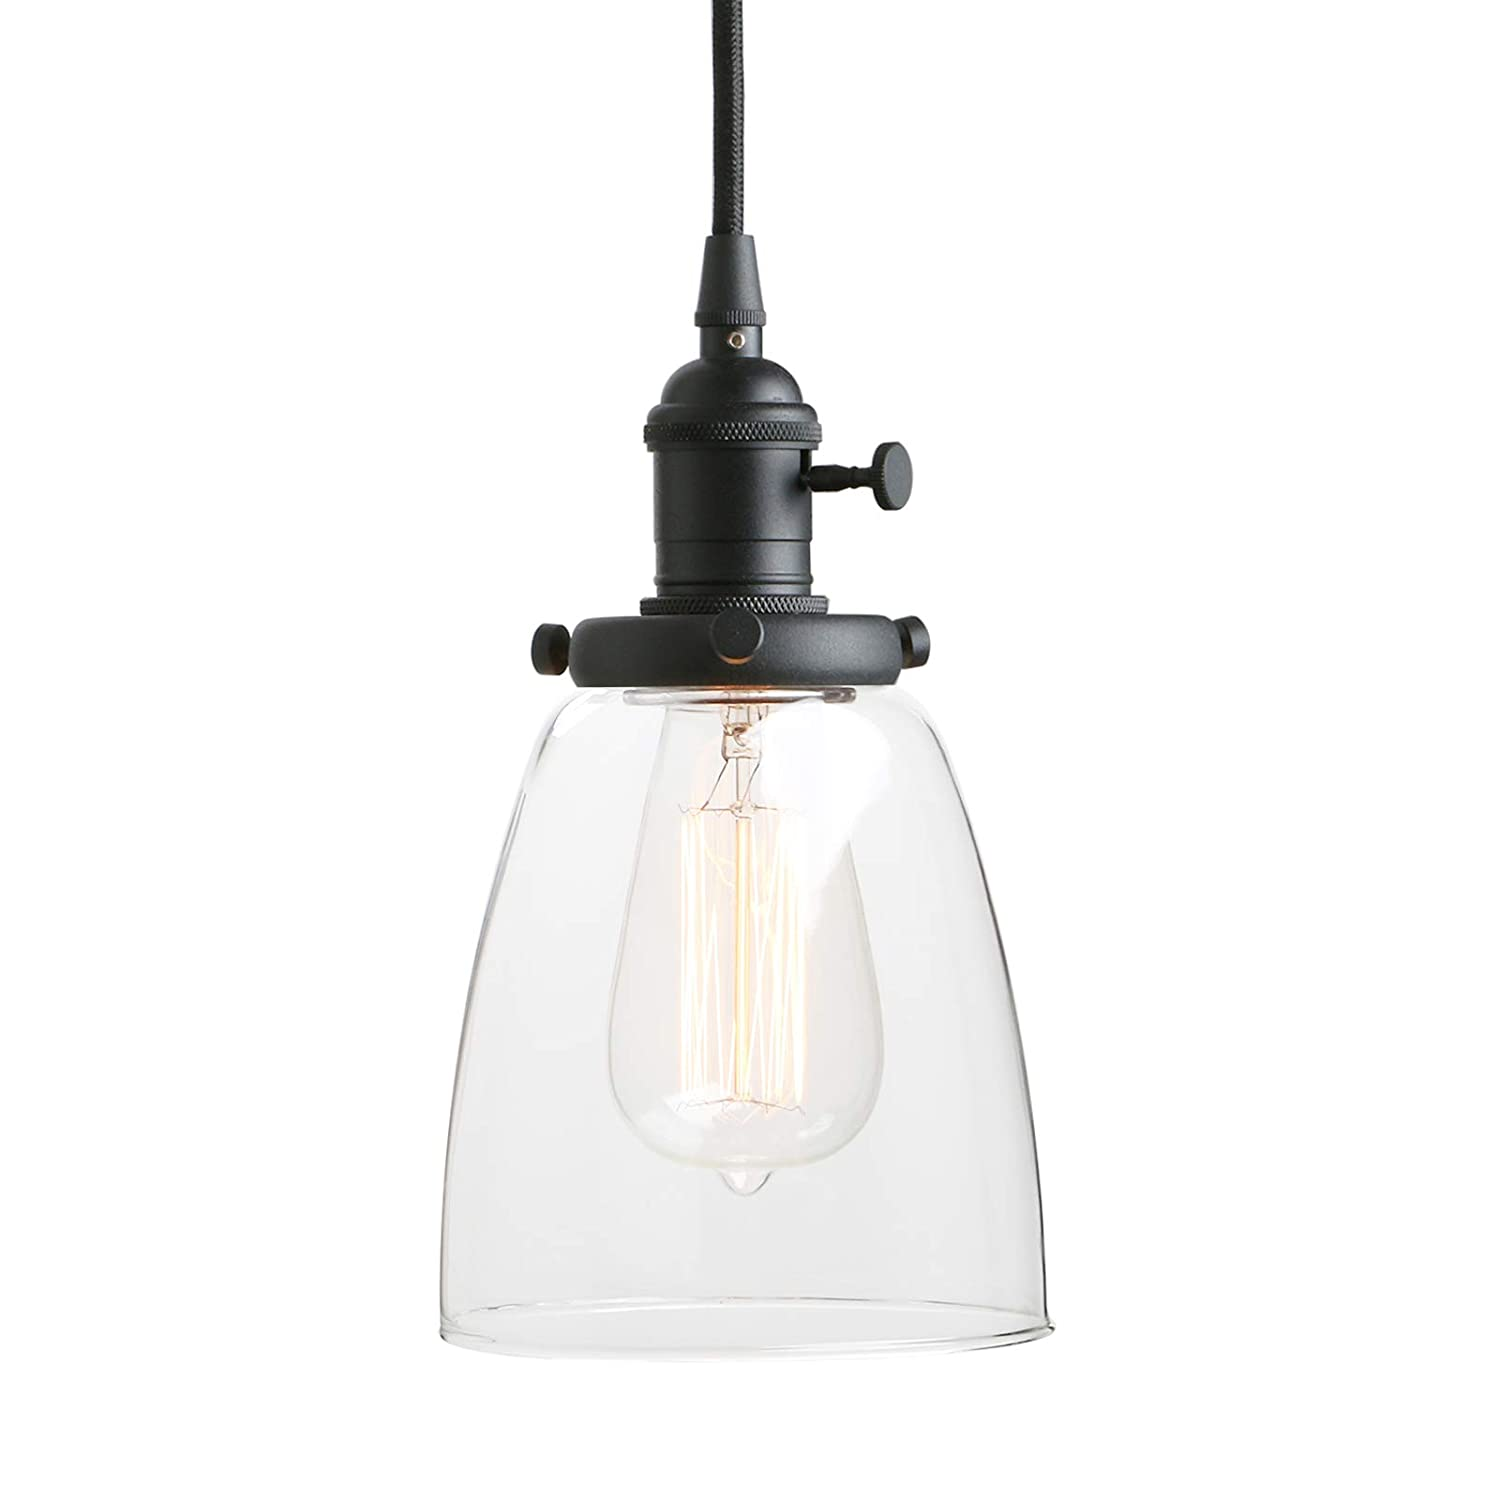 Amazing Pathson Industrial Glass Pendant Lighting Black Vintage Style Hanging Light Fixture For Living Room Dining Room Best Image Libraries Thycampuscom